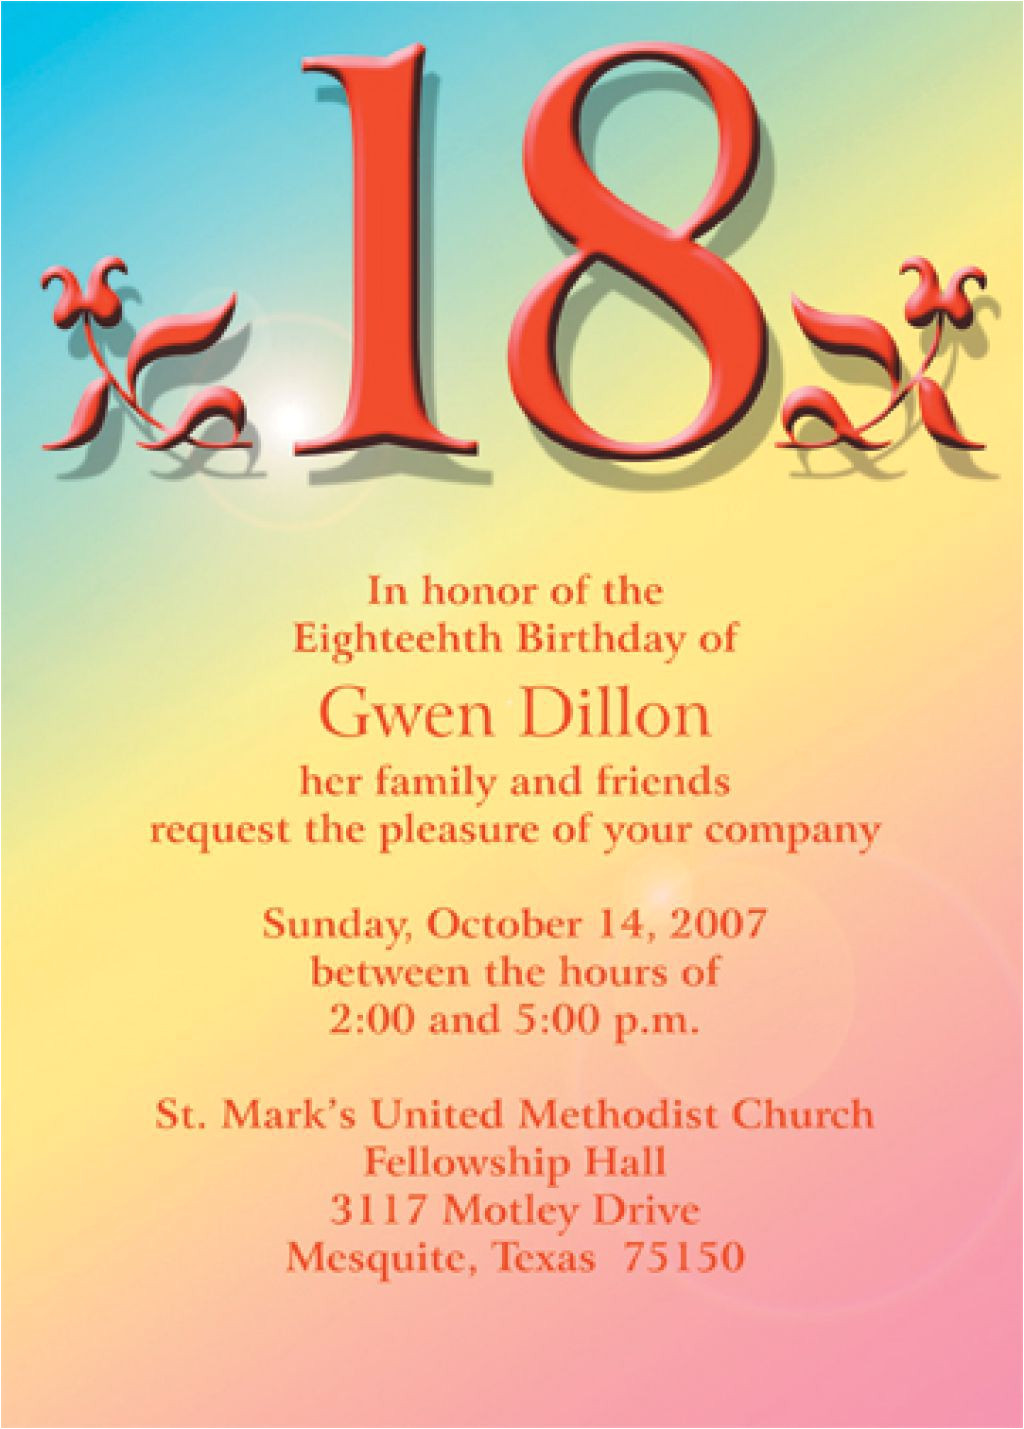 18th birthday invitation layout